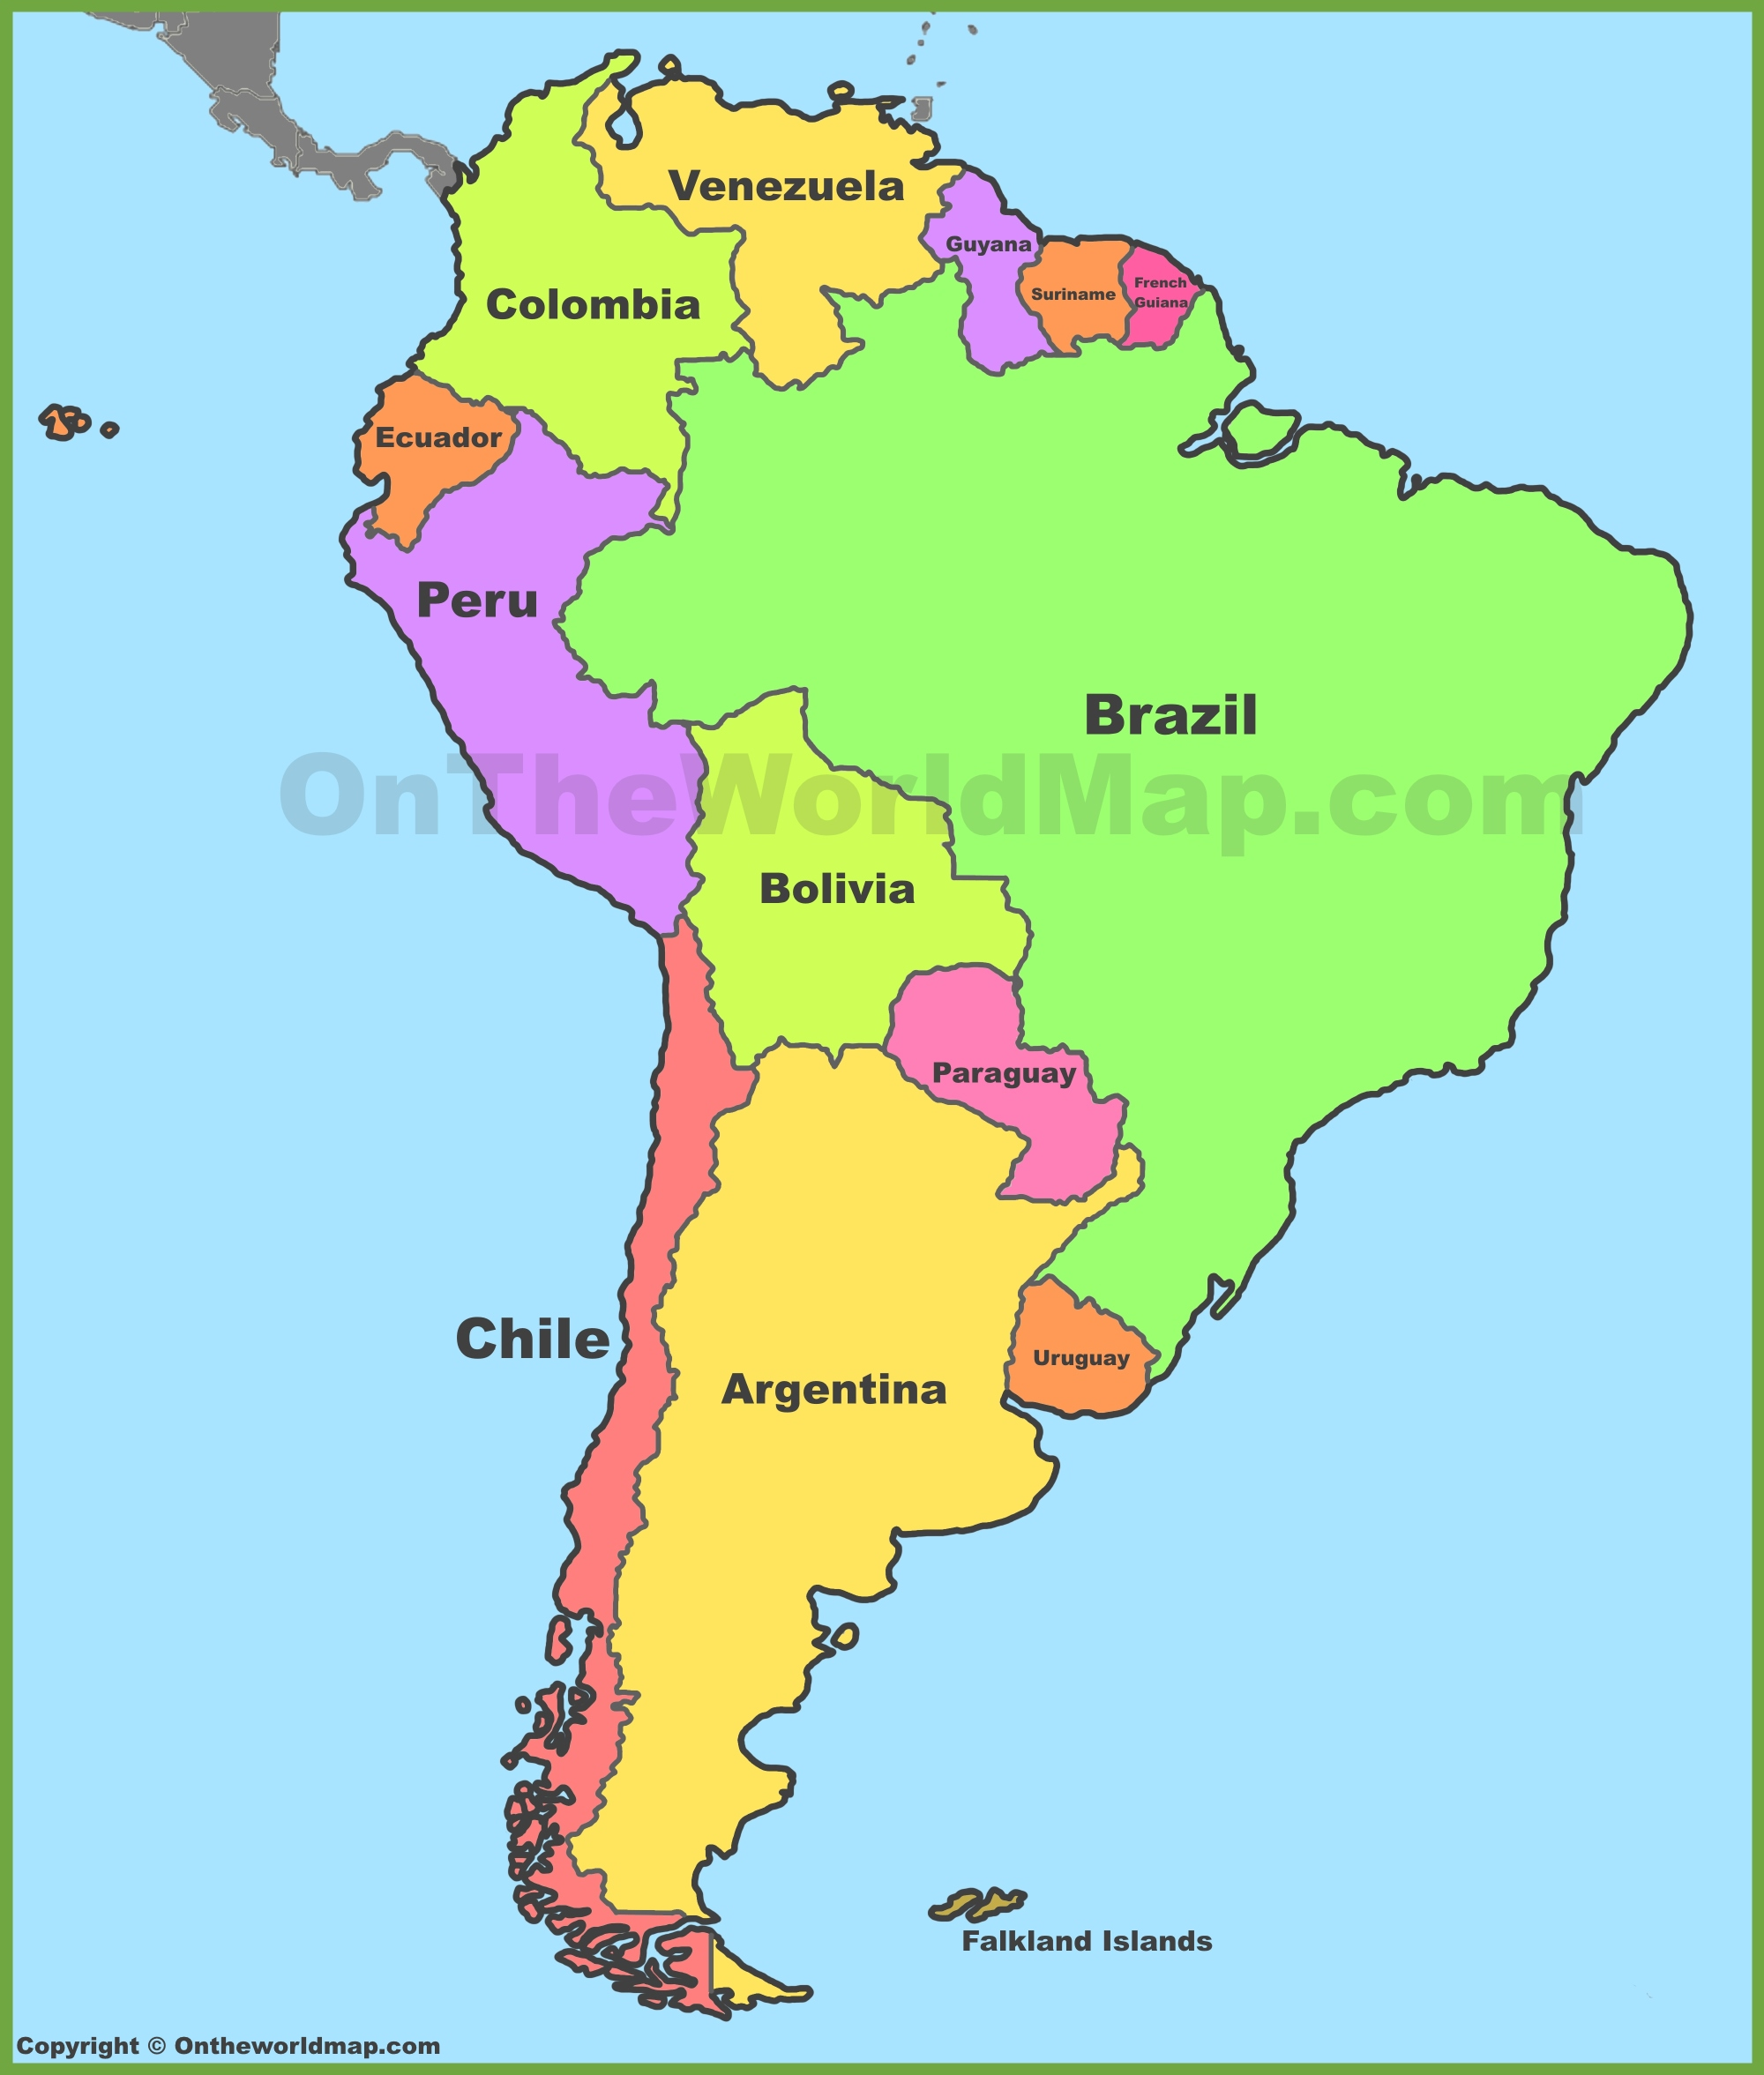 Political Map Of Latin America Political map of South America